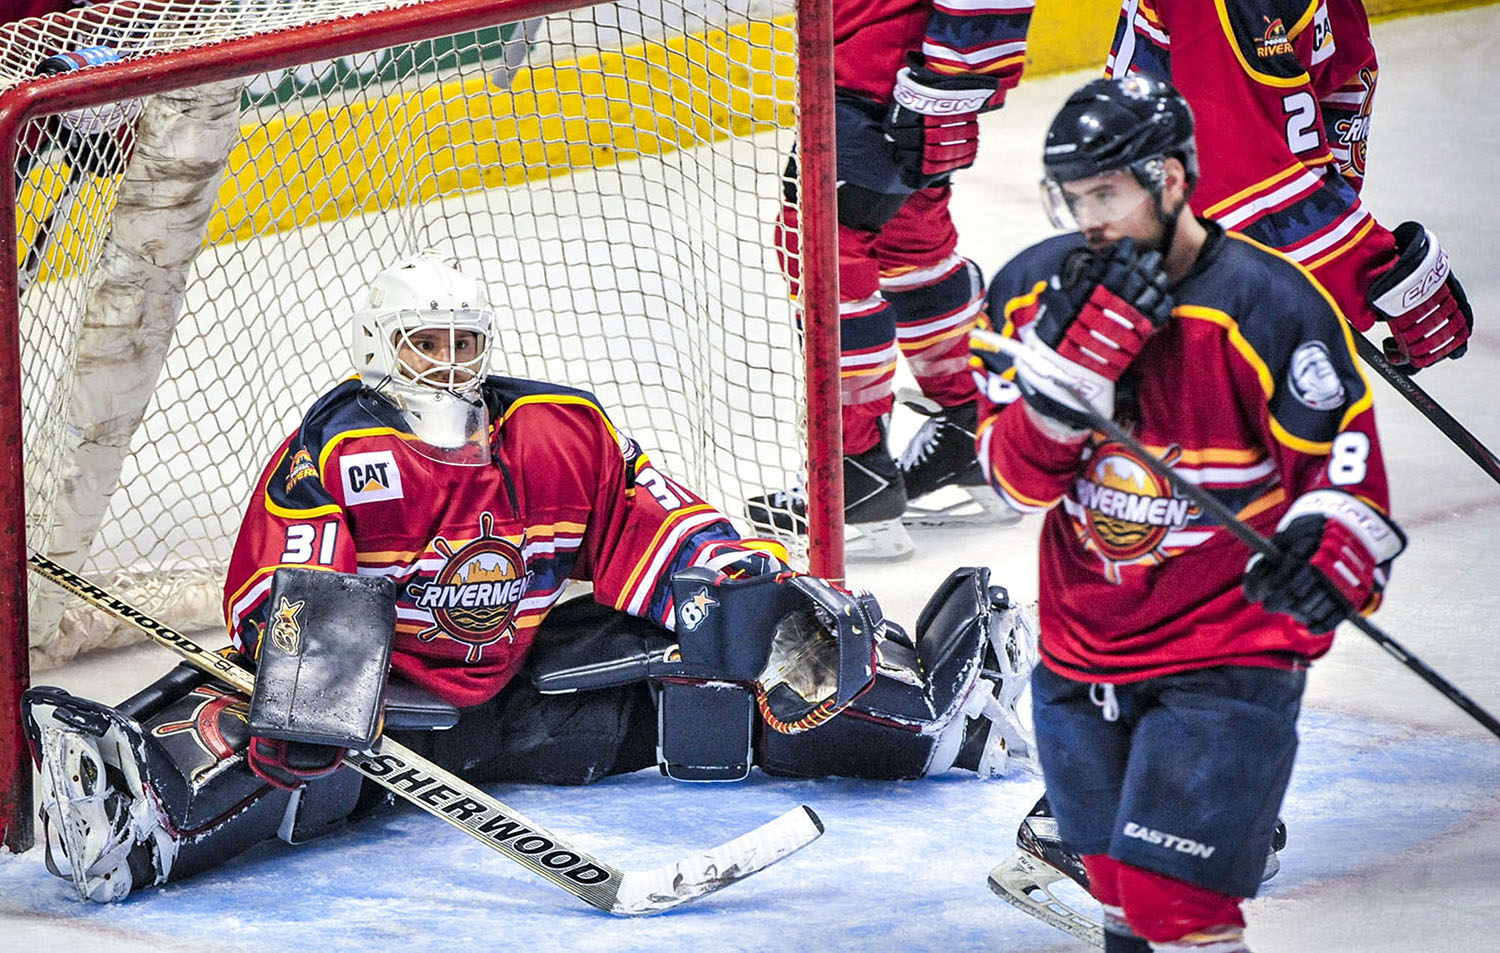 Rivermen goaltender Kyle Rank (31) and teammate Steve Morra (88) react to an Ice Flyers goal during the second period of their game at Carver arena in Peoria, Illinois, Saturday night. The Ice Flyers defeated the Rivermen 2-1.